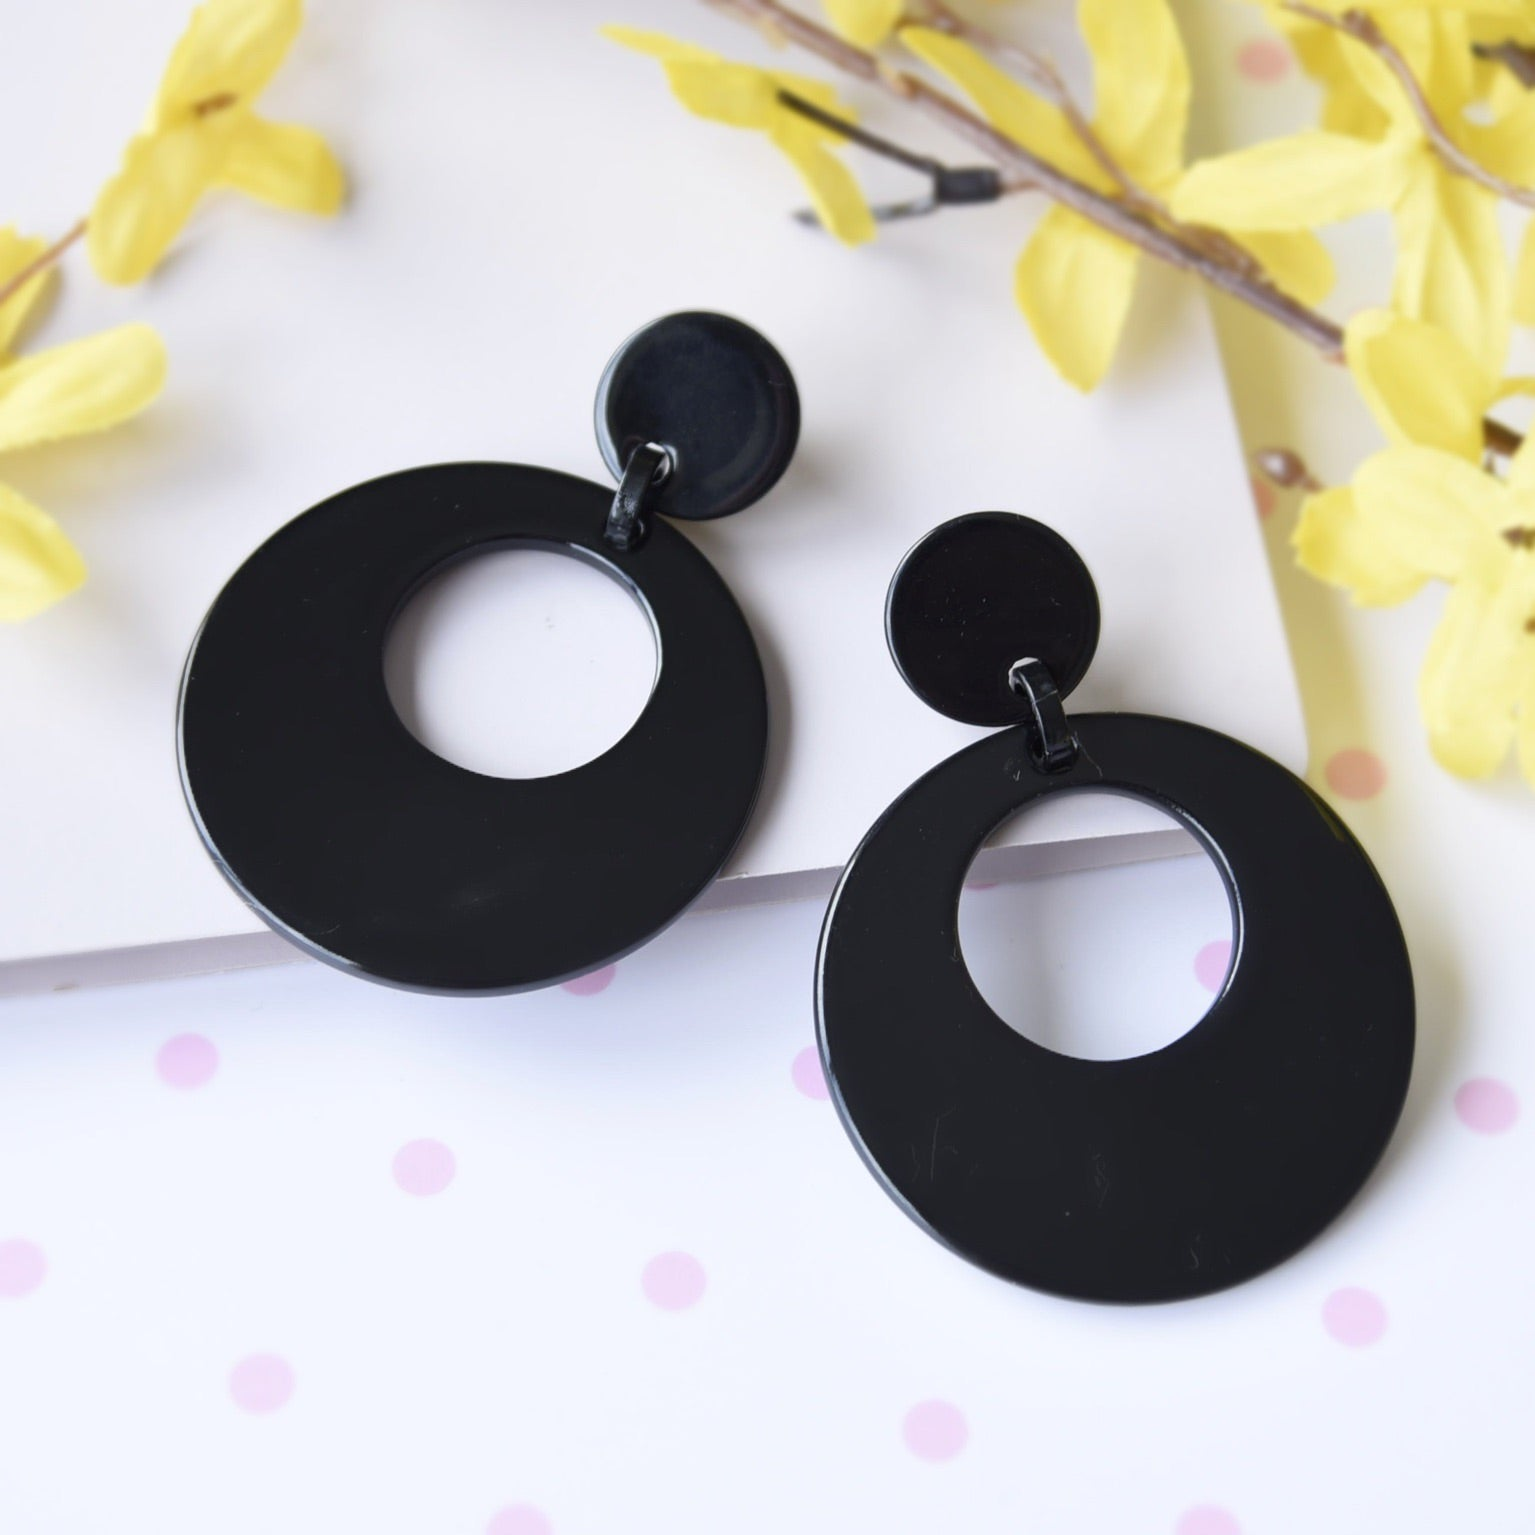 Classic Black Lightweight Fashion Statement Earrings